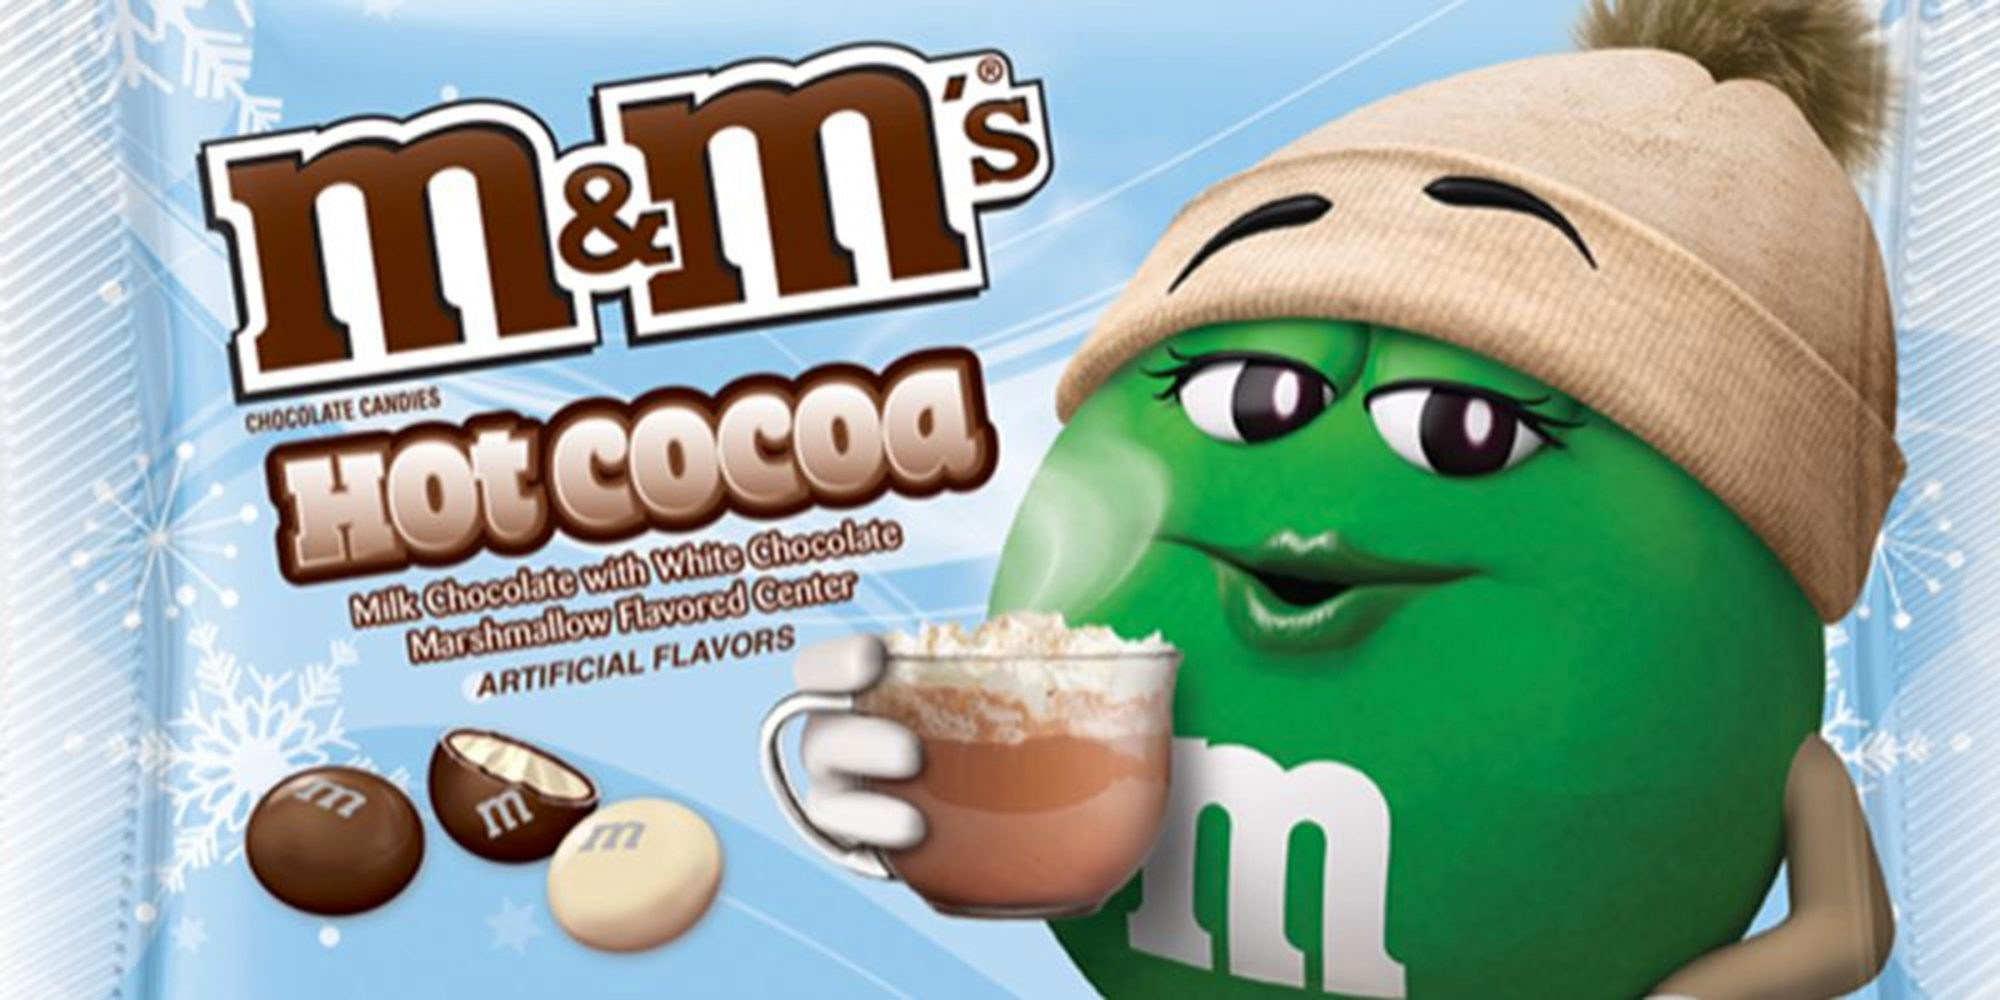 Hot Cocoa M&M's Are Returning to Store Shelves with a New Marshmallow Center